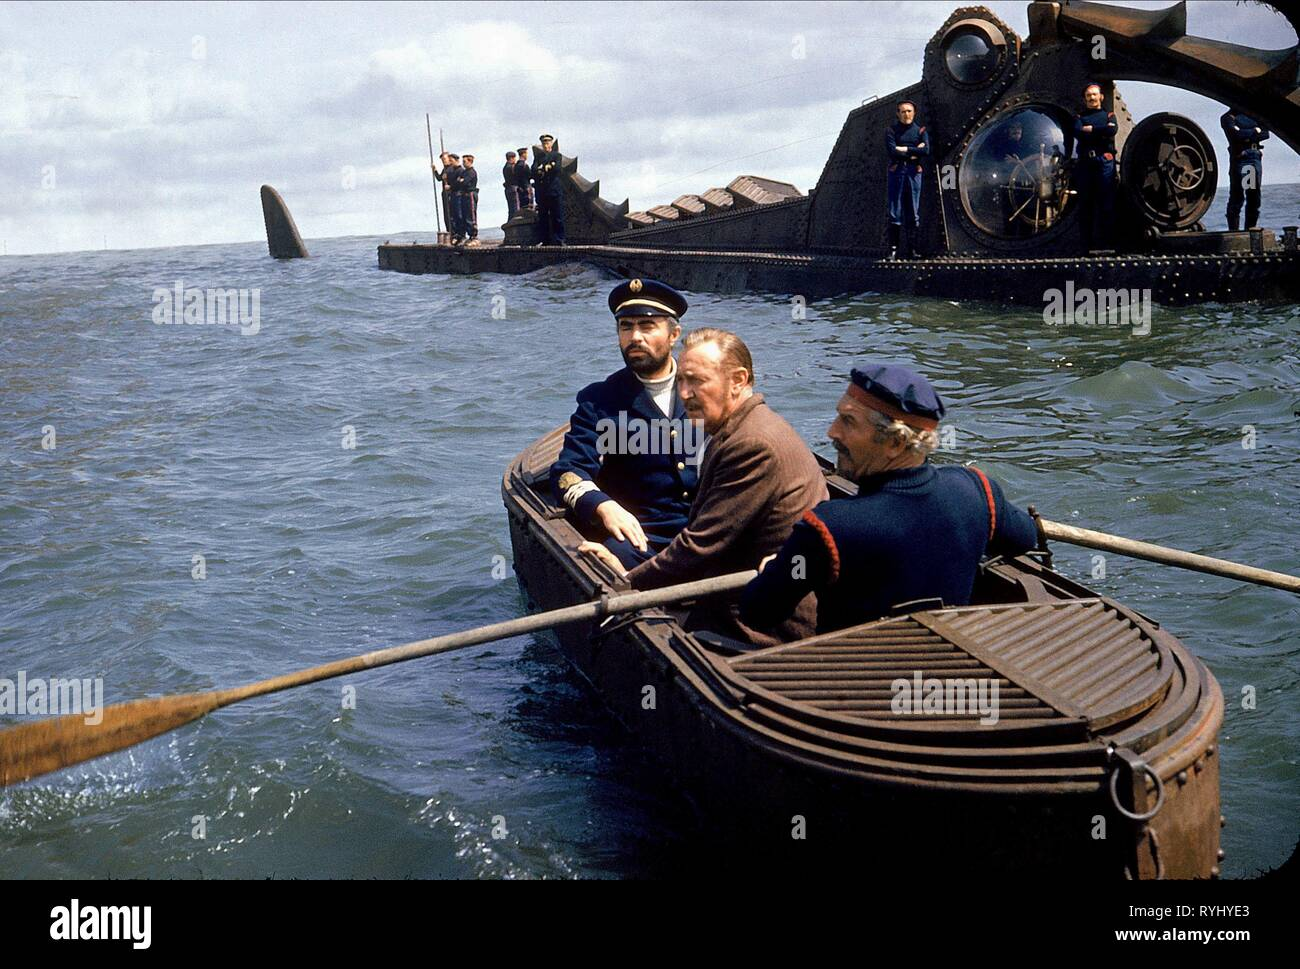 JAMES MASON, PAUL LUKAS, 20 000 LEAGUES UNDER THE SEA, 1954 - Stock Image